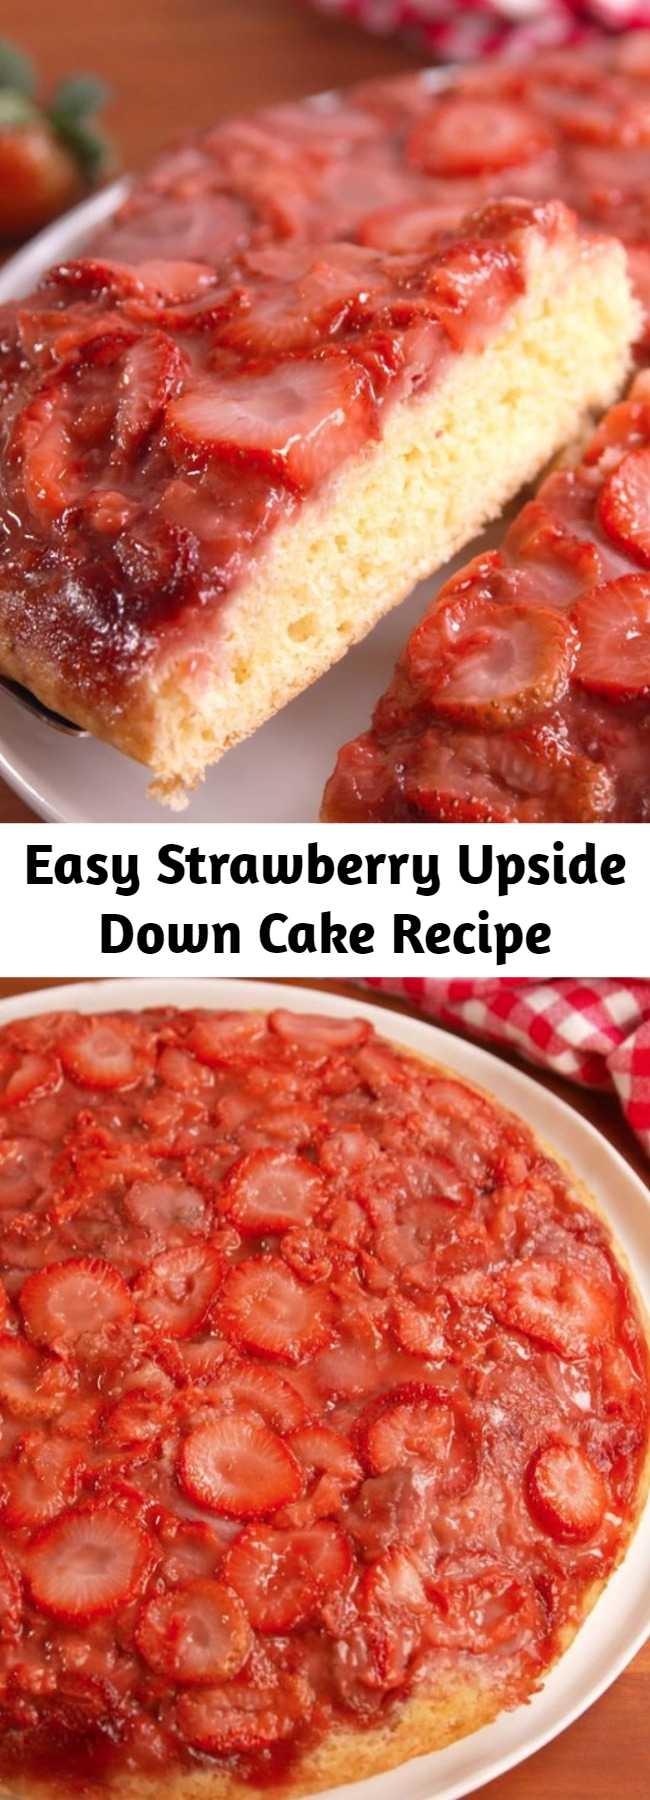 """Easy Strawberry Upside Down Cake Recipe - This Strawberry Upside Down Cake is the official dessert of summer. If you don't have an oven-safe skillet, you can use a 12"""" cake pan!"""